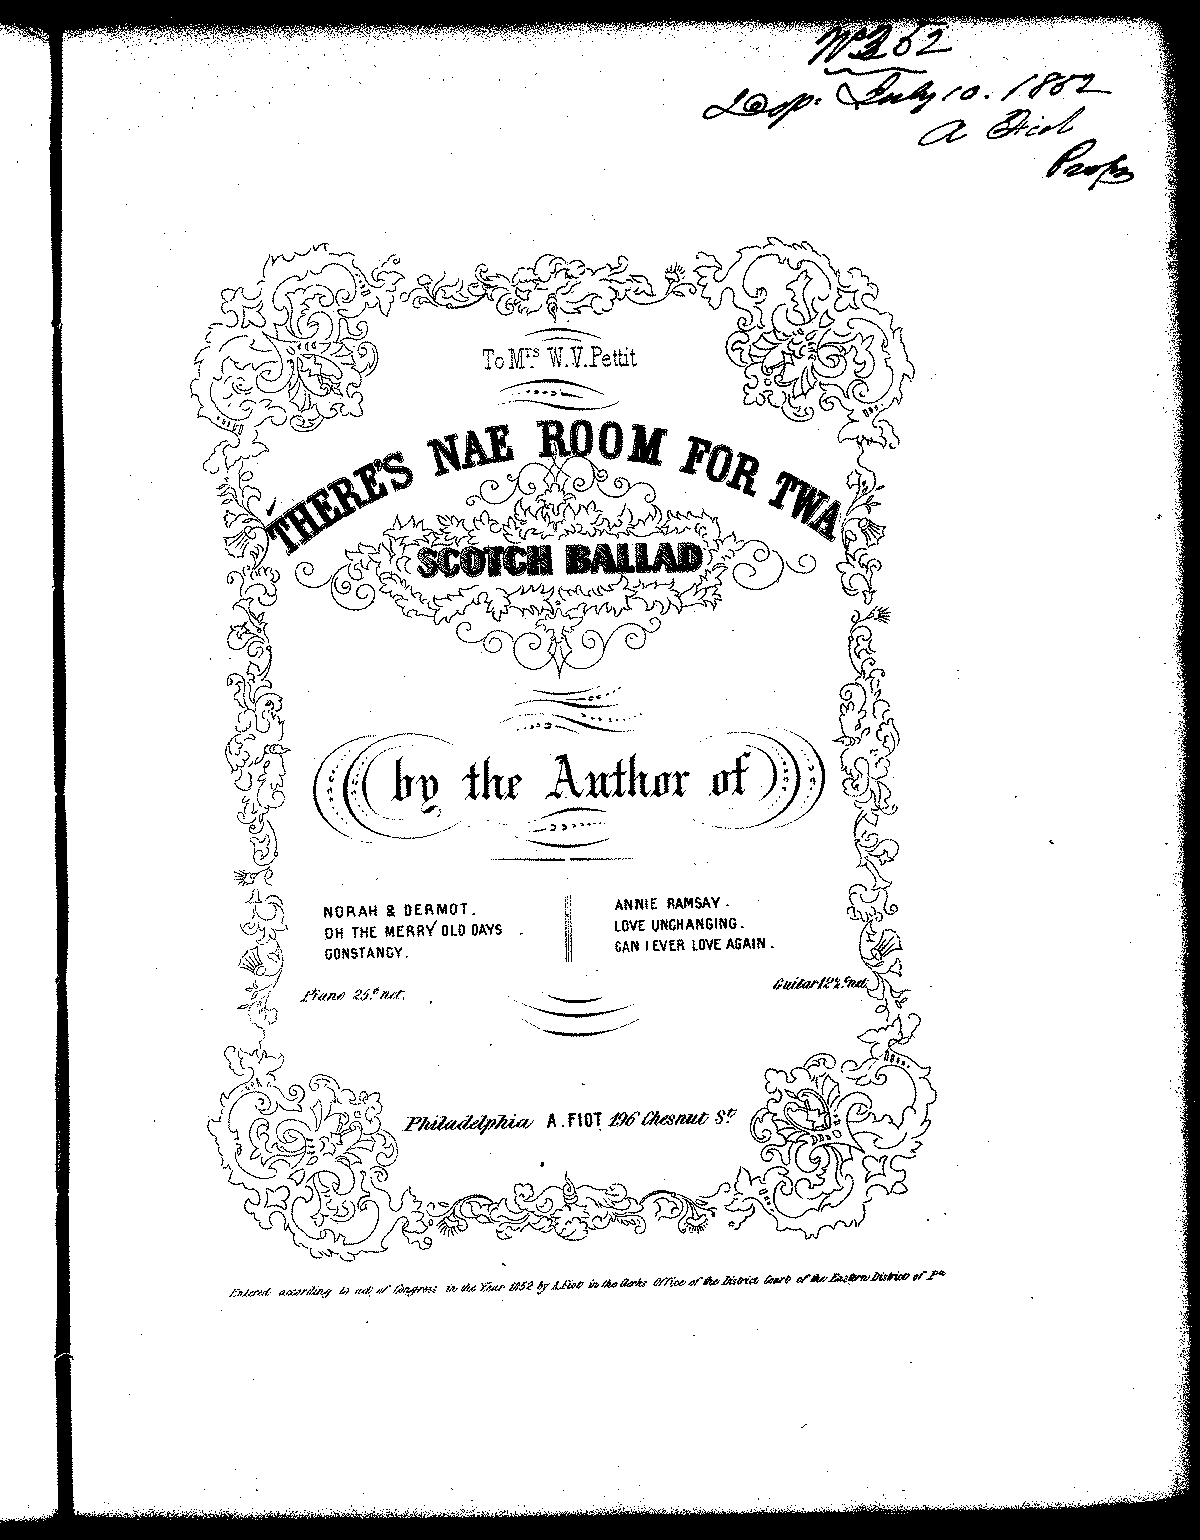 PMLP570558-TheresNaeRoomForTwa ScotchBallad pub1852.pdf